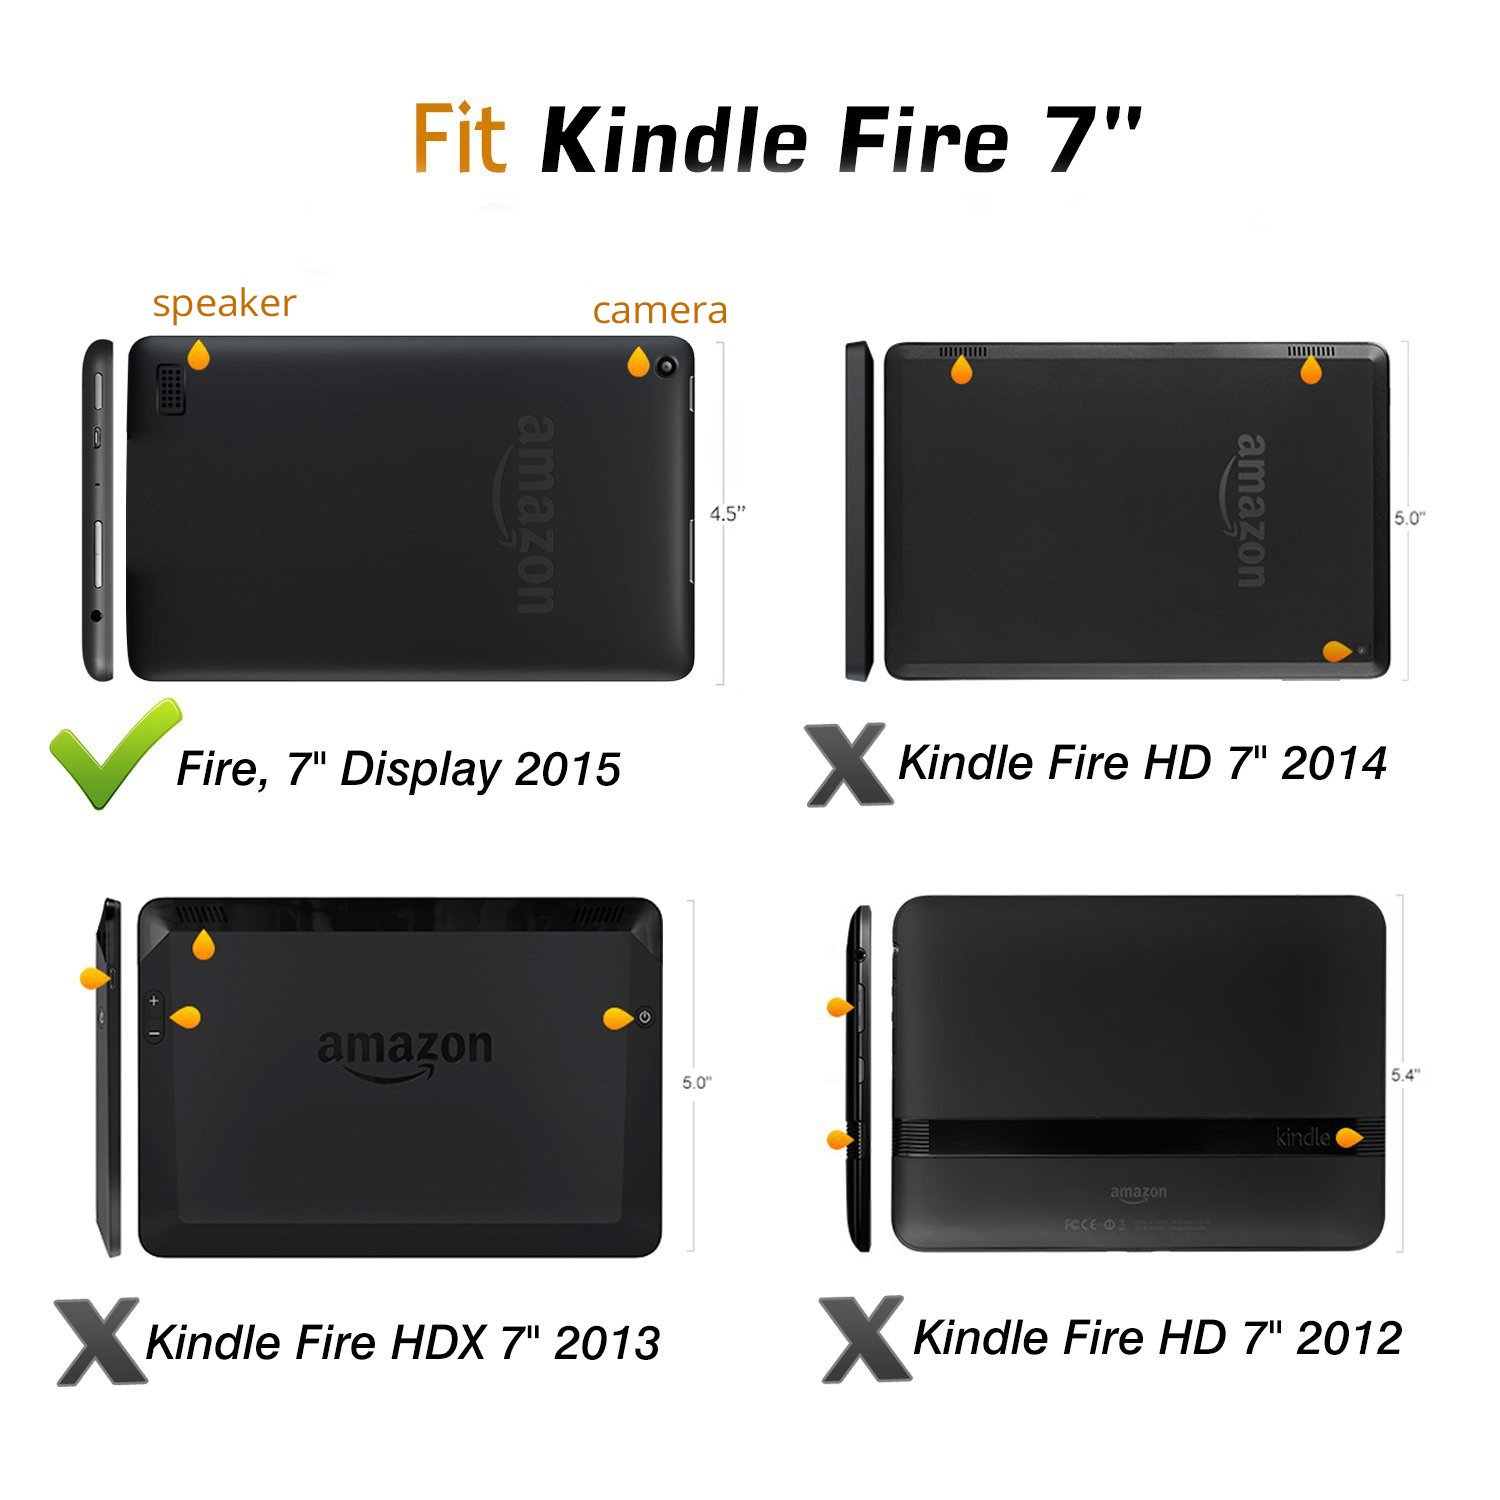 Kindle fire protective case kindle fire protective case images - Fire 7 2015 Kids Case Savfy Ultra Slim Lightweight Amazon Co Uk Electronics